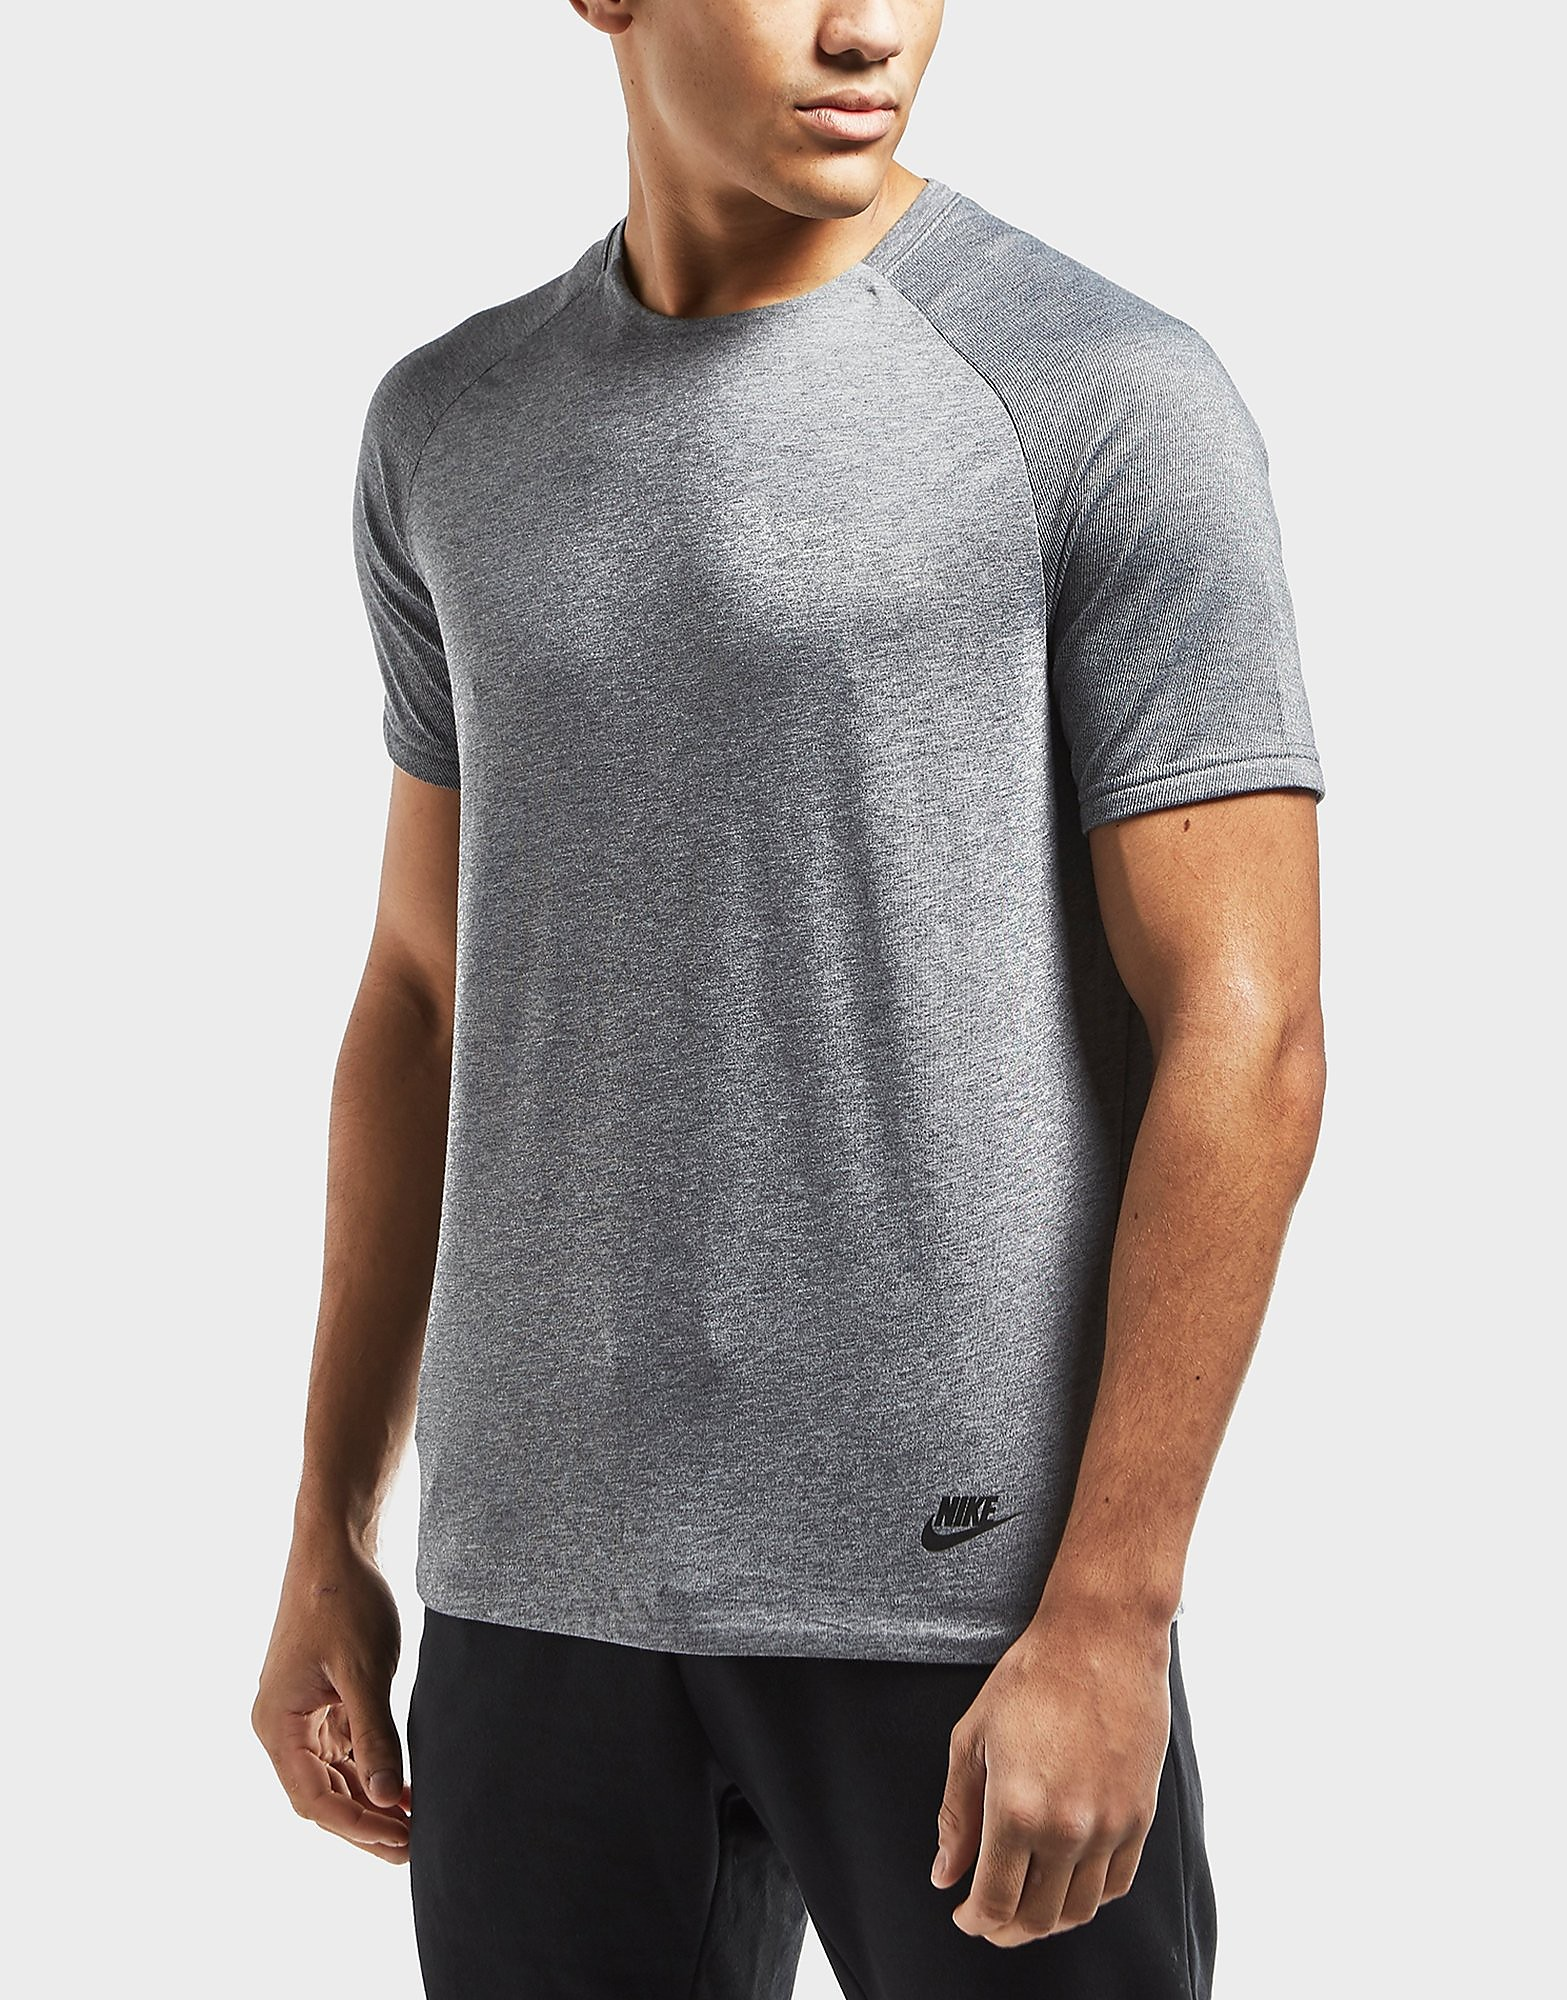 Nike Band Top T-Shirt